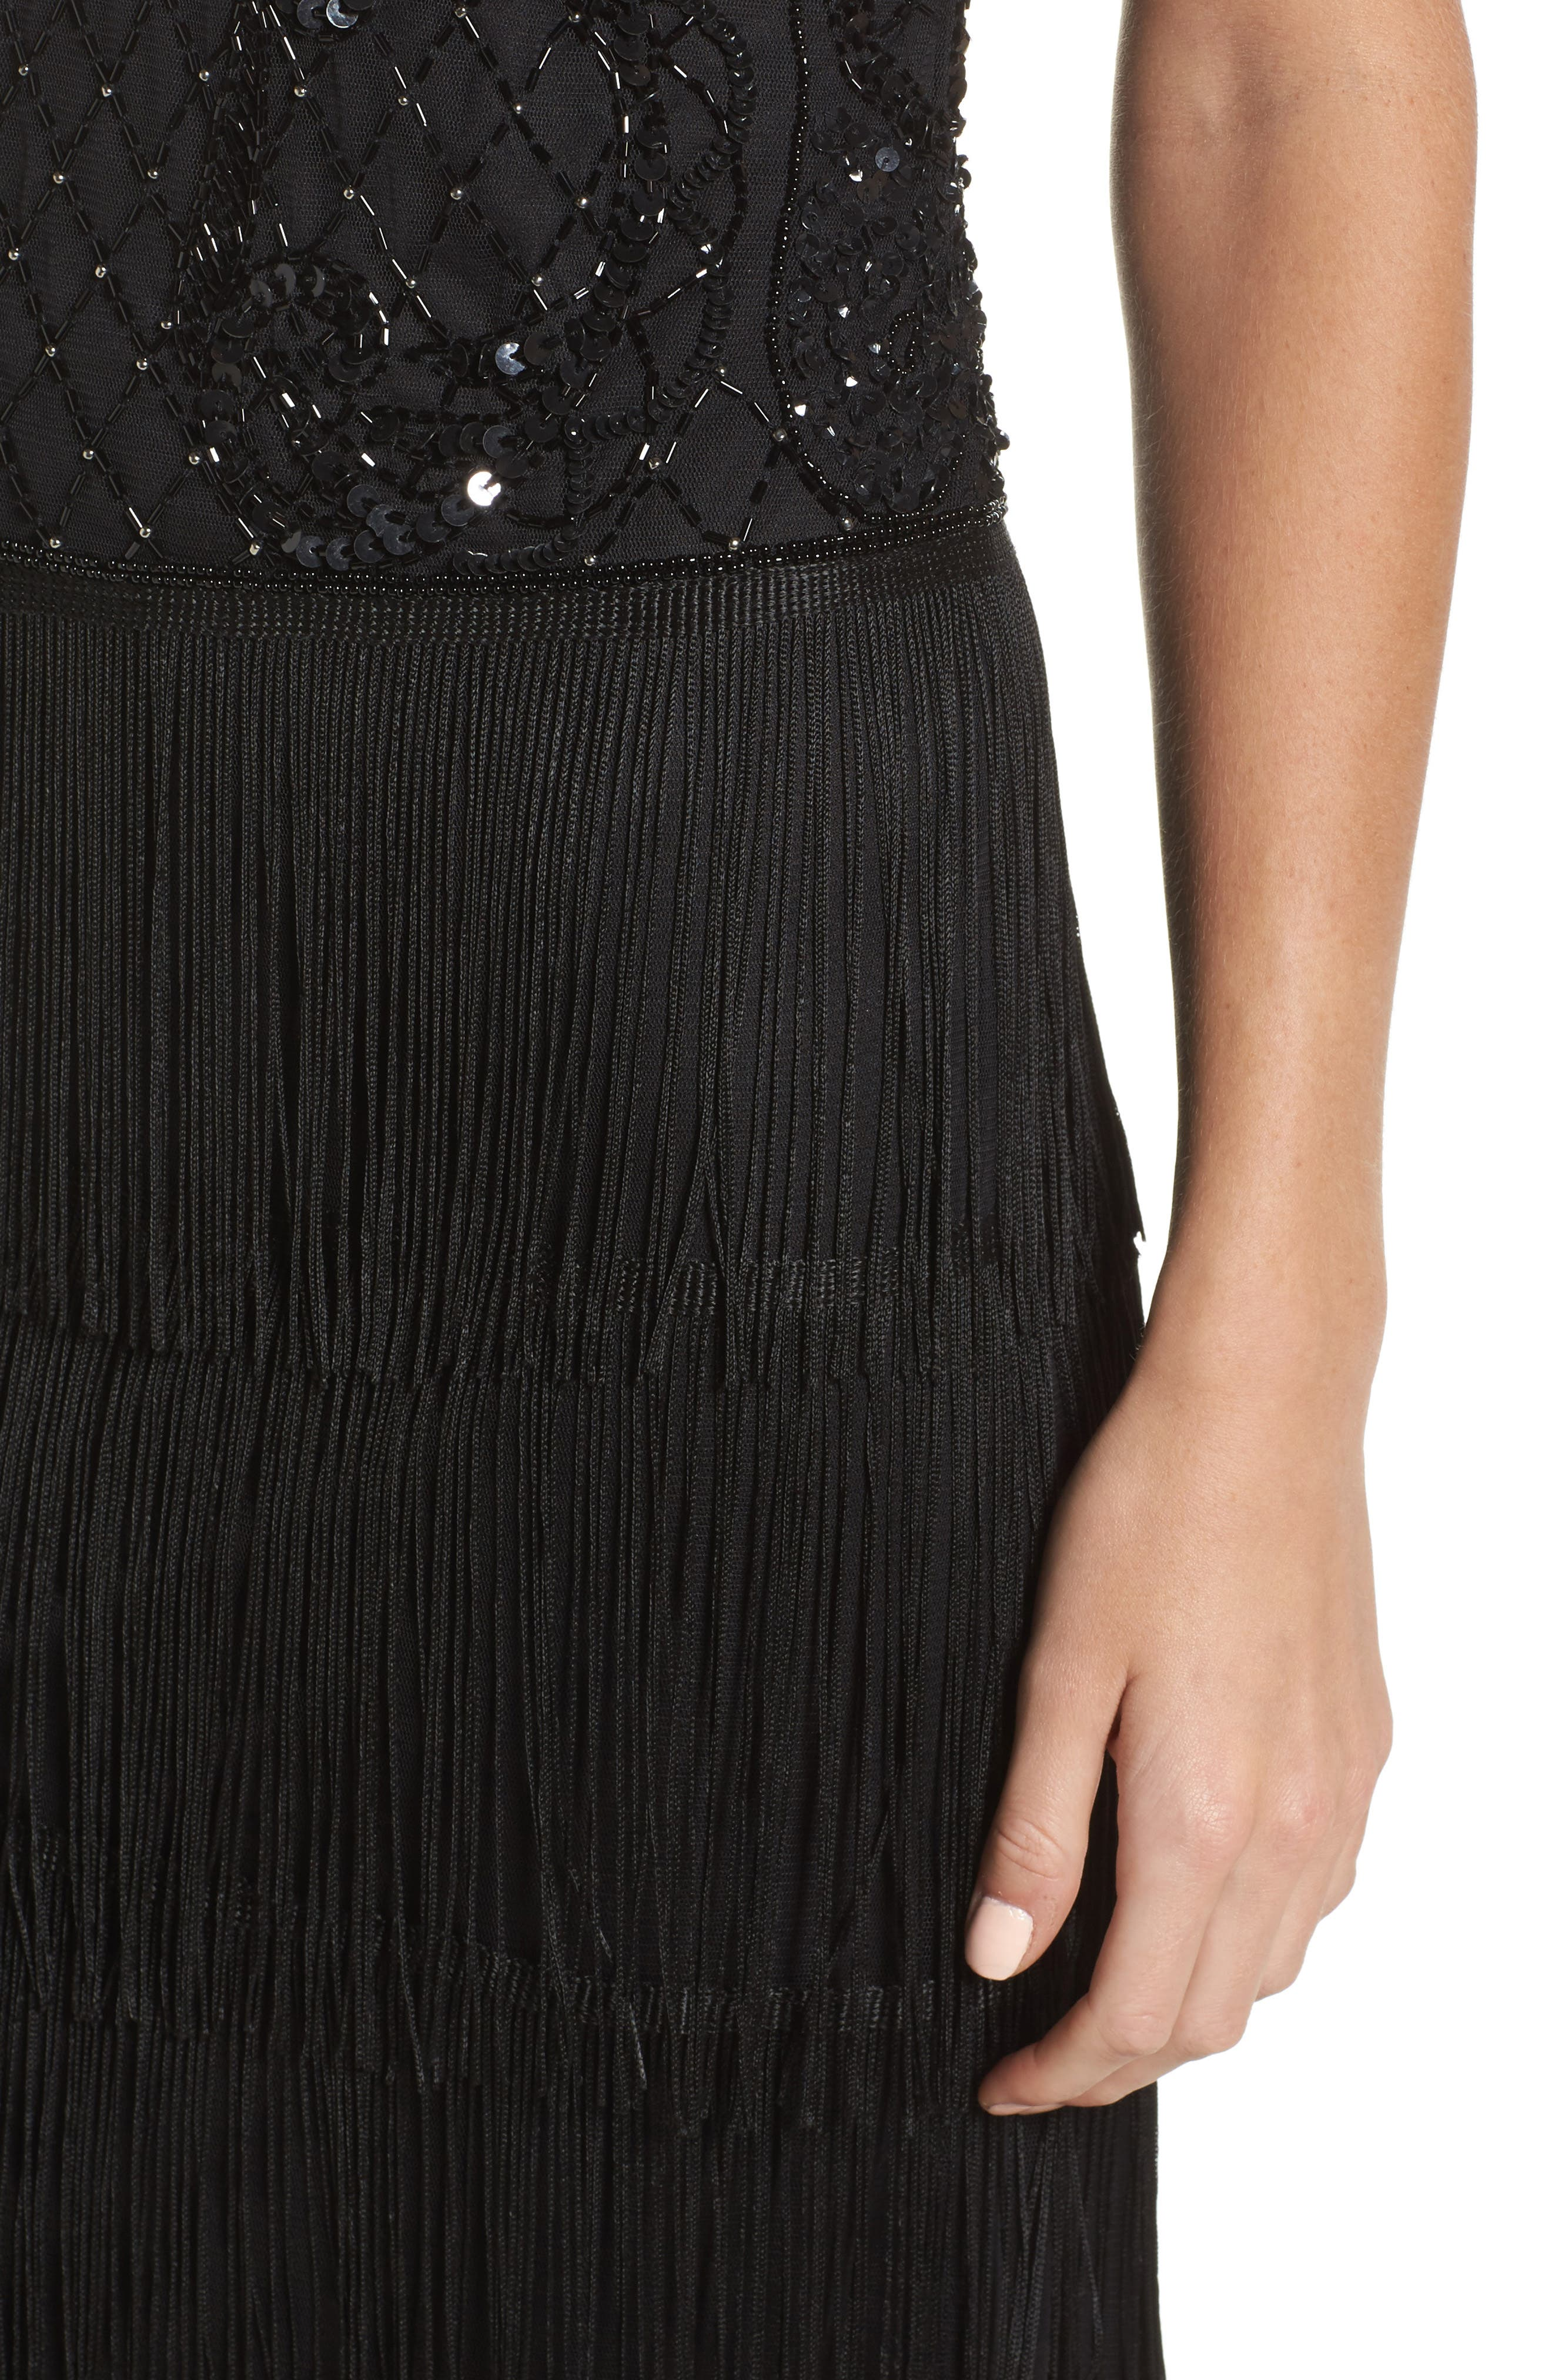 Embellished Fringe Tiered Sheath Dress,                             Alternate thumbnail 4, color,                             Black